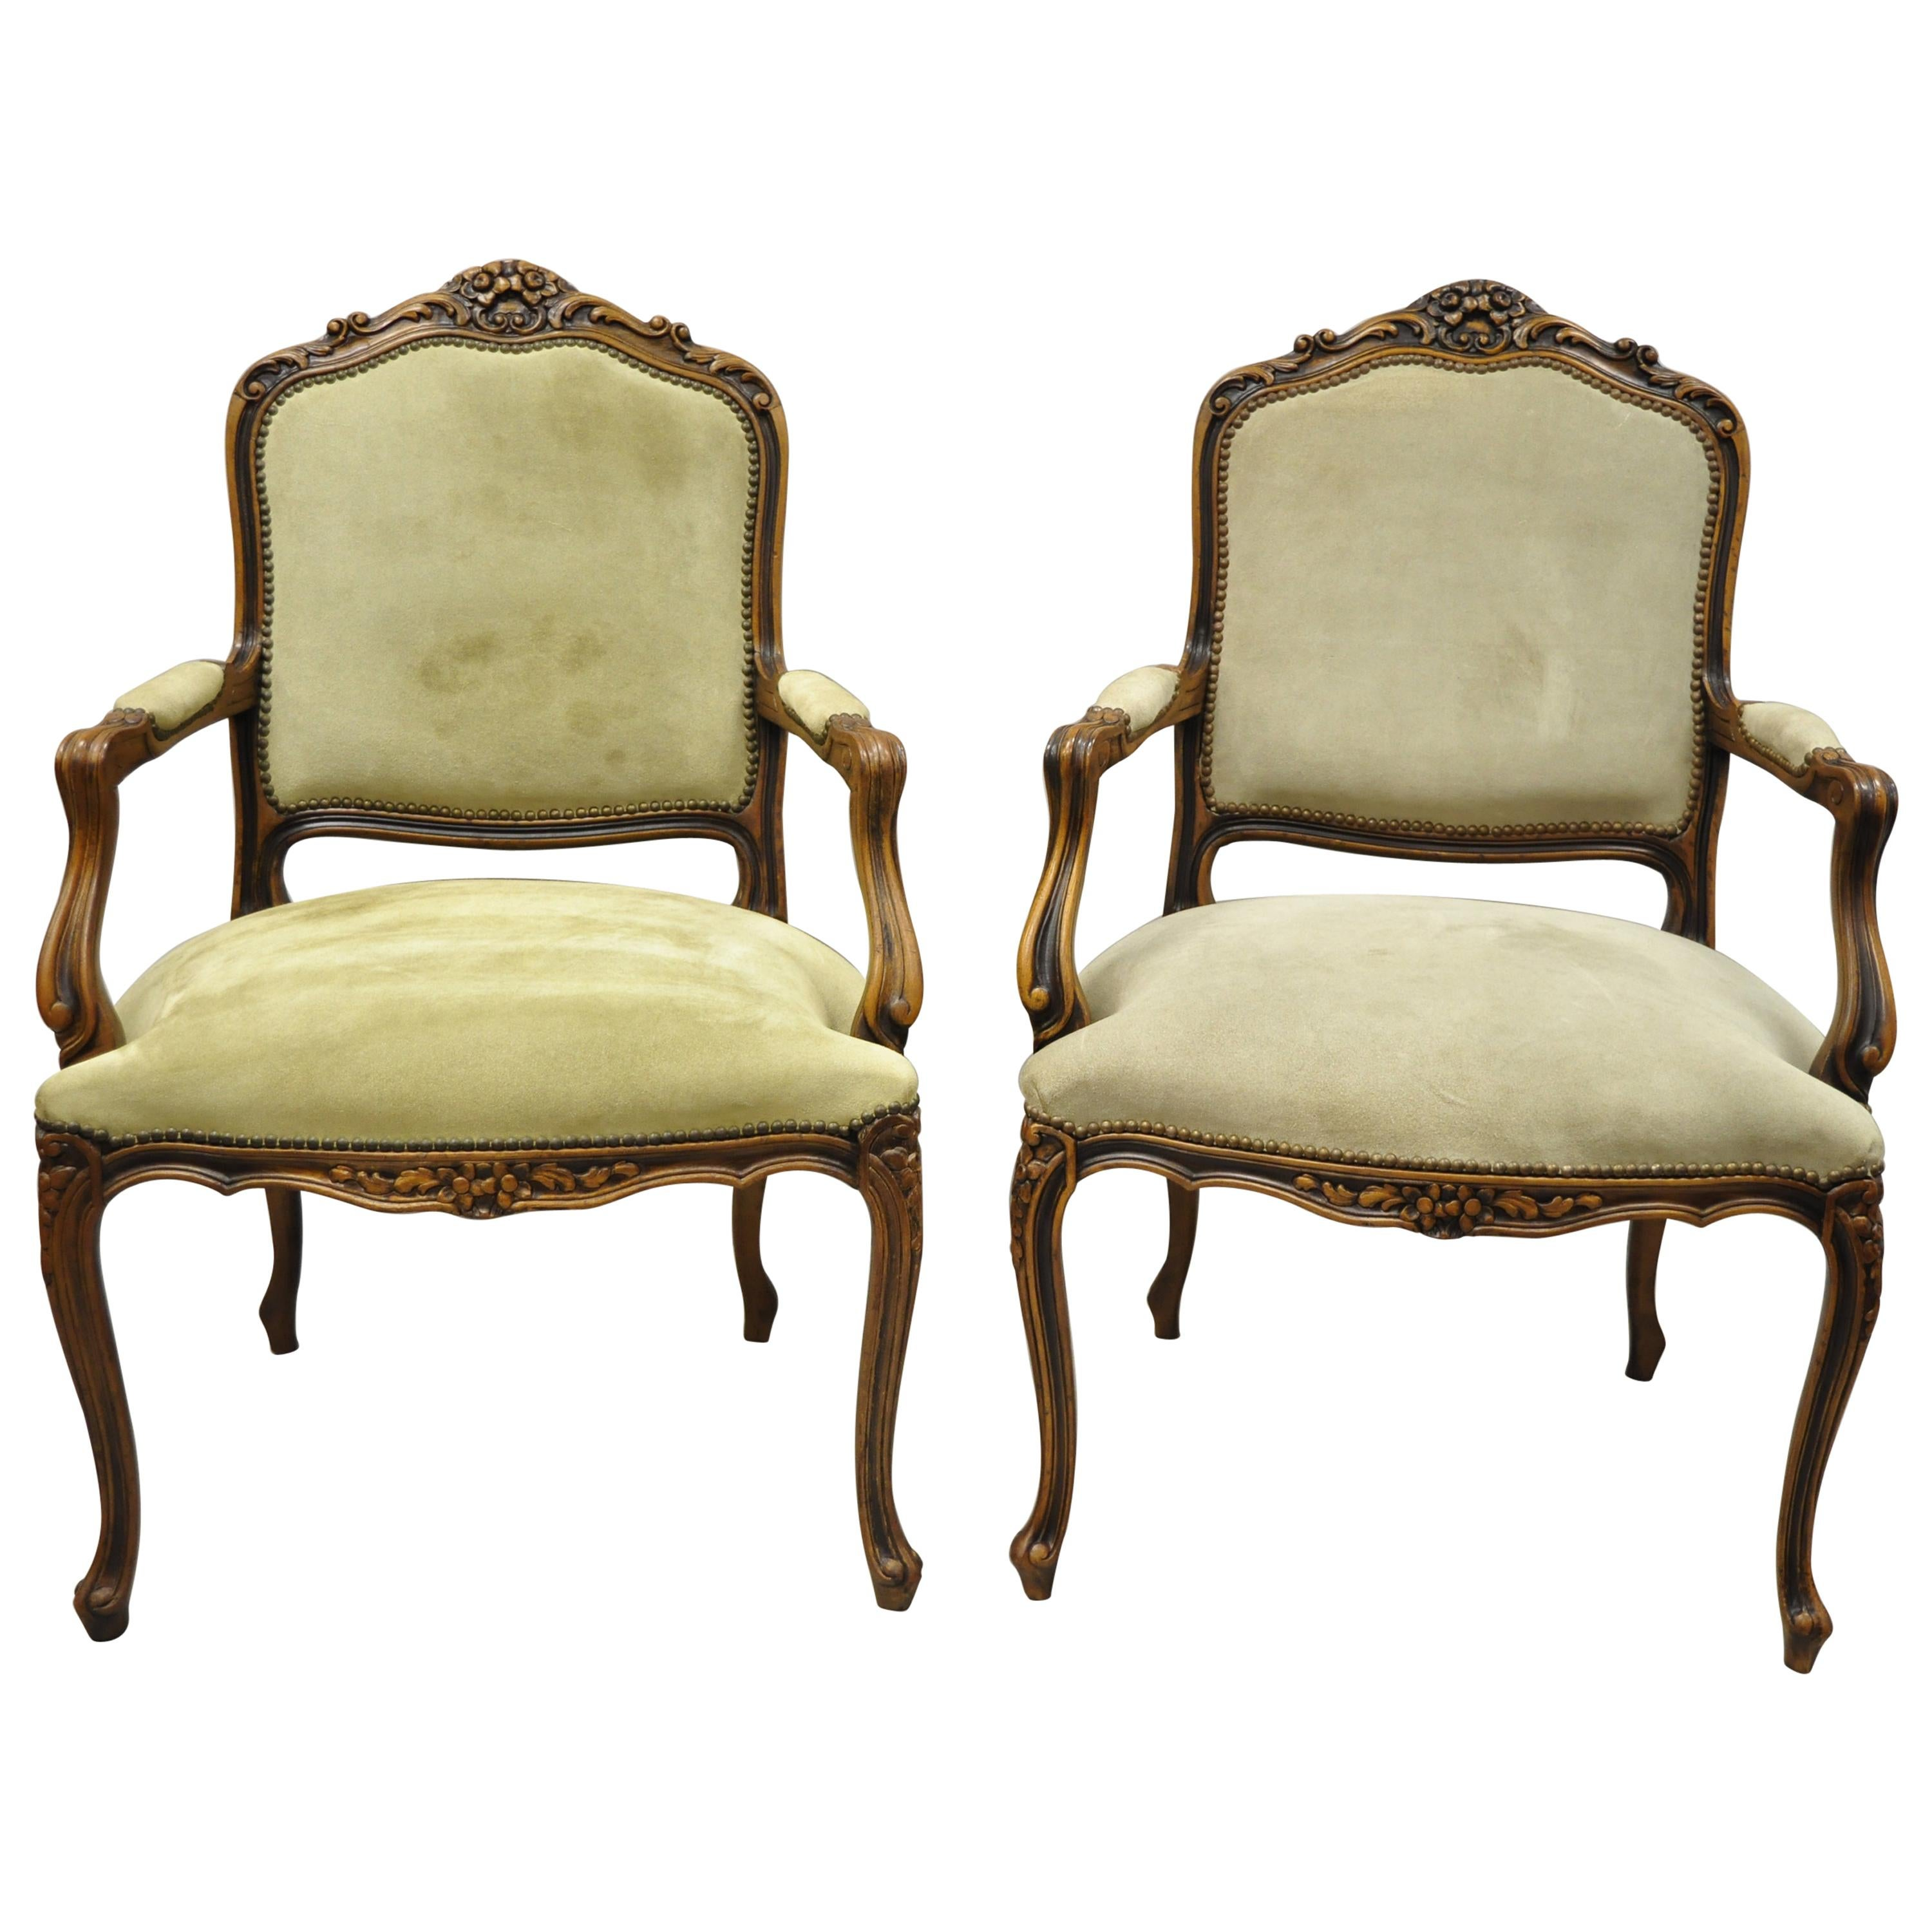 Vintage French Provincial Louis XV Style Italian Armchairs by Chateau D'ax, Pair